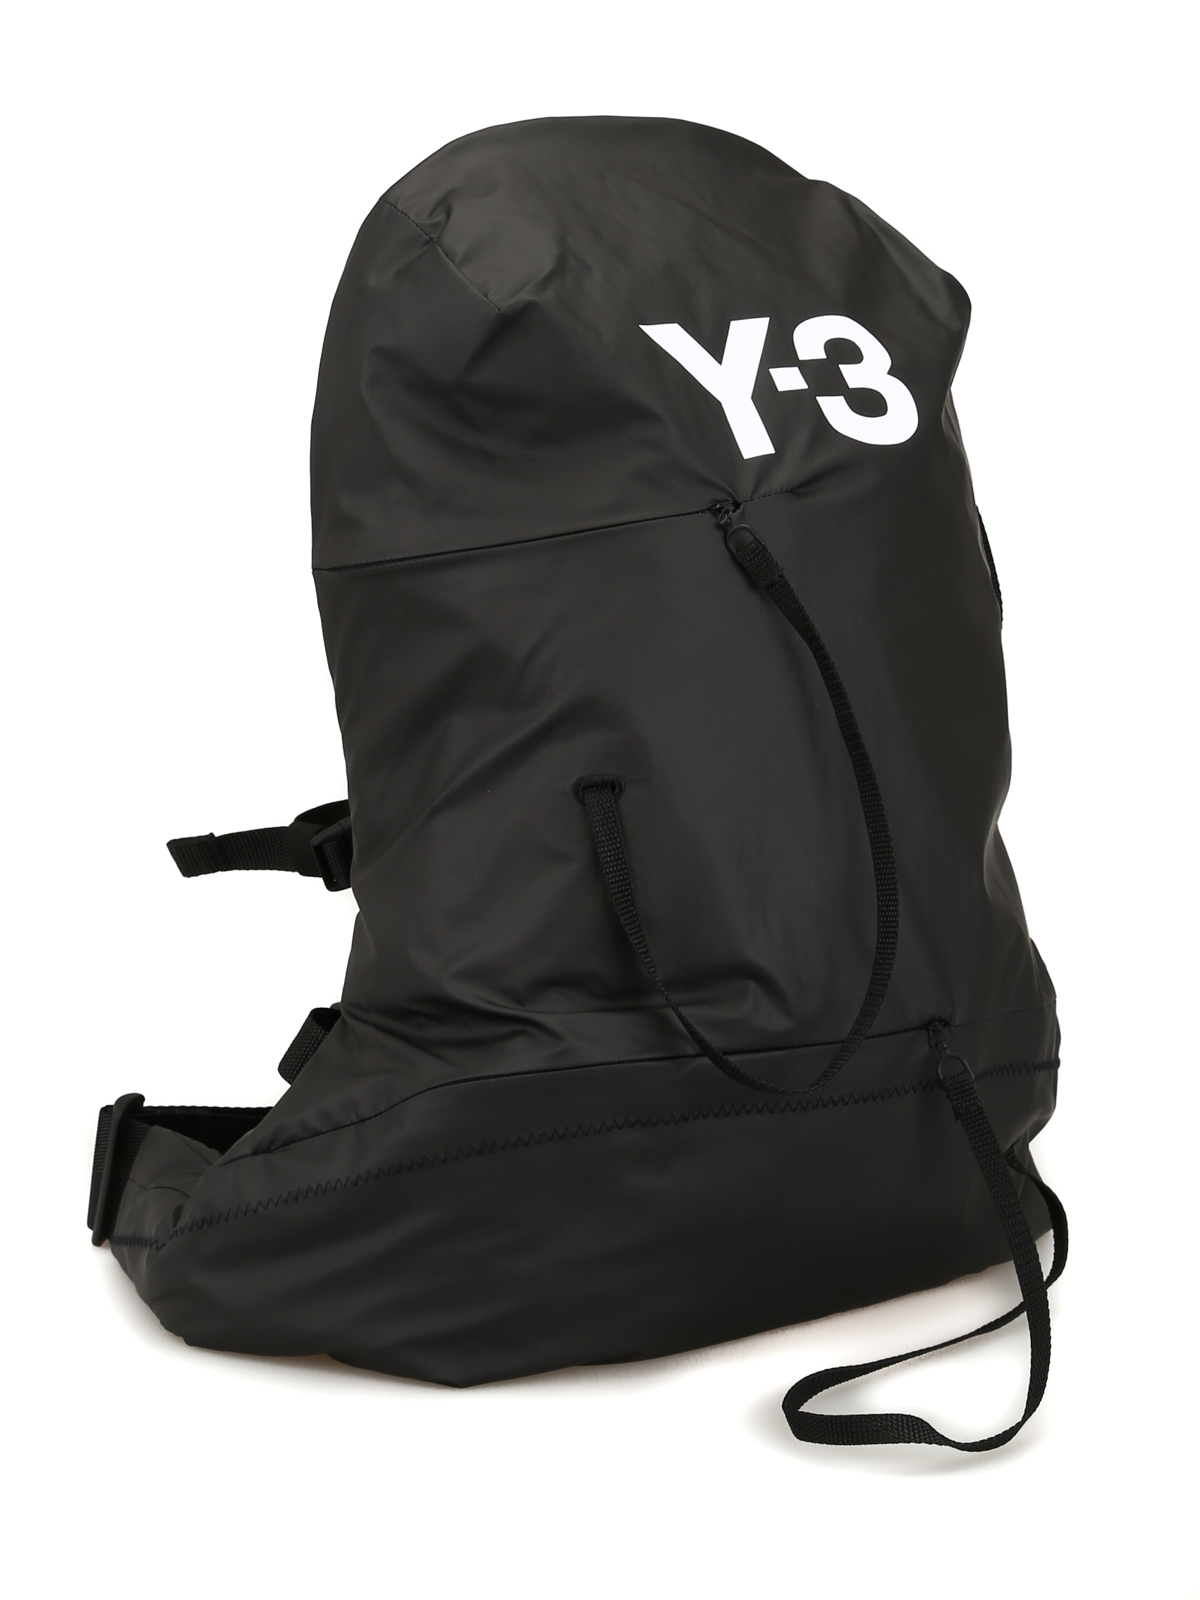 8ac7f11f3 Adidas Y-3 - Bungee backpack - backpacks - DY0538